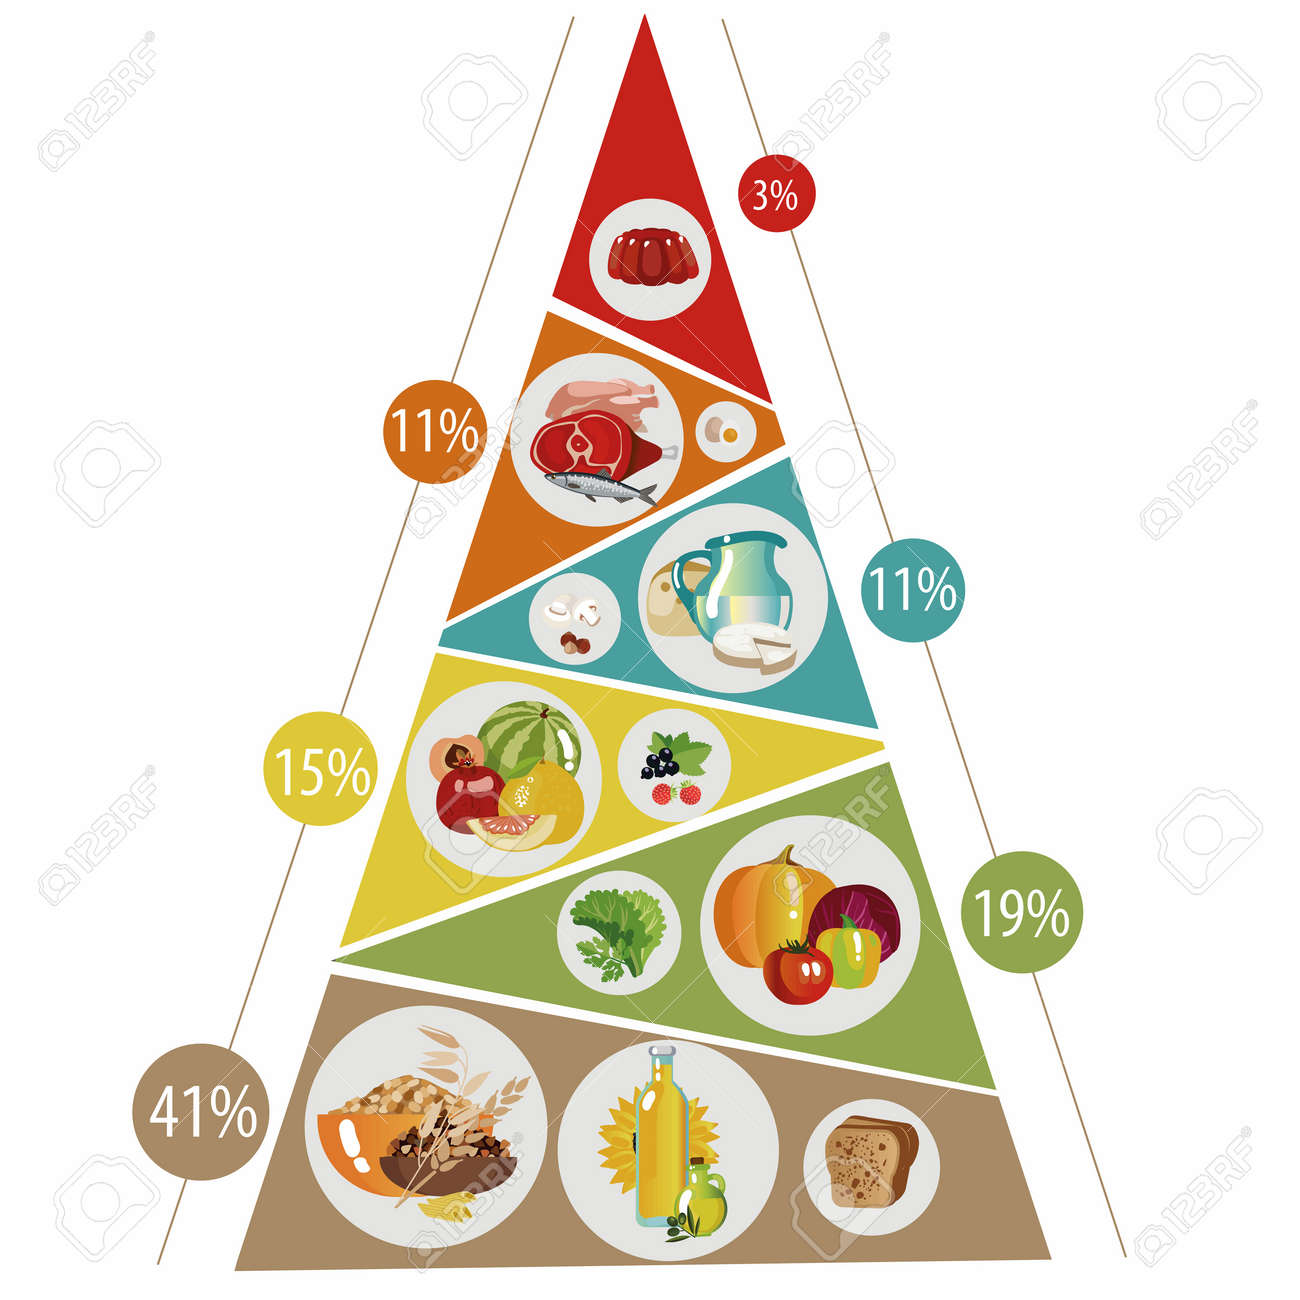 food pyramid consisting of healthy food in groups with percentages